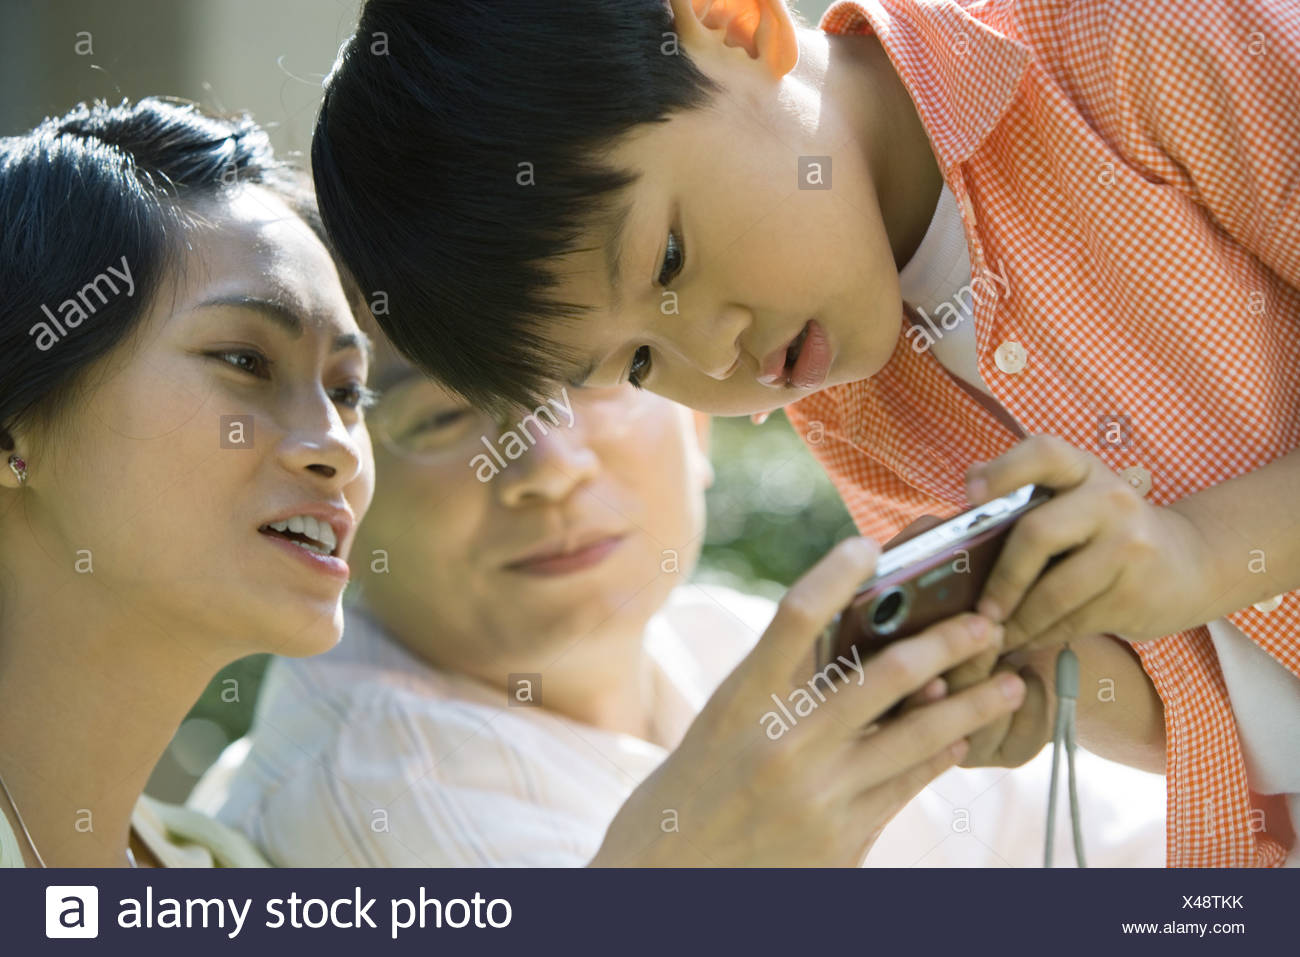 Boy with parents, mother holding digital camera, boy bending over to look - Stock Image